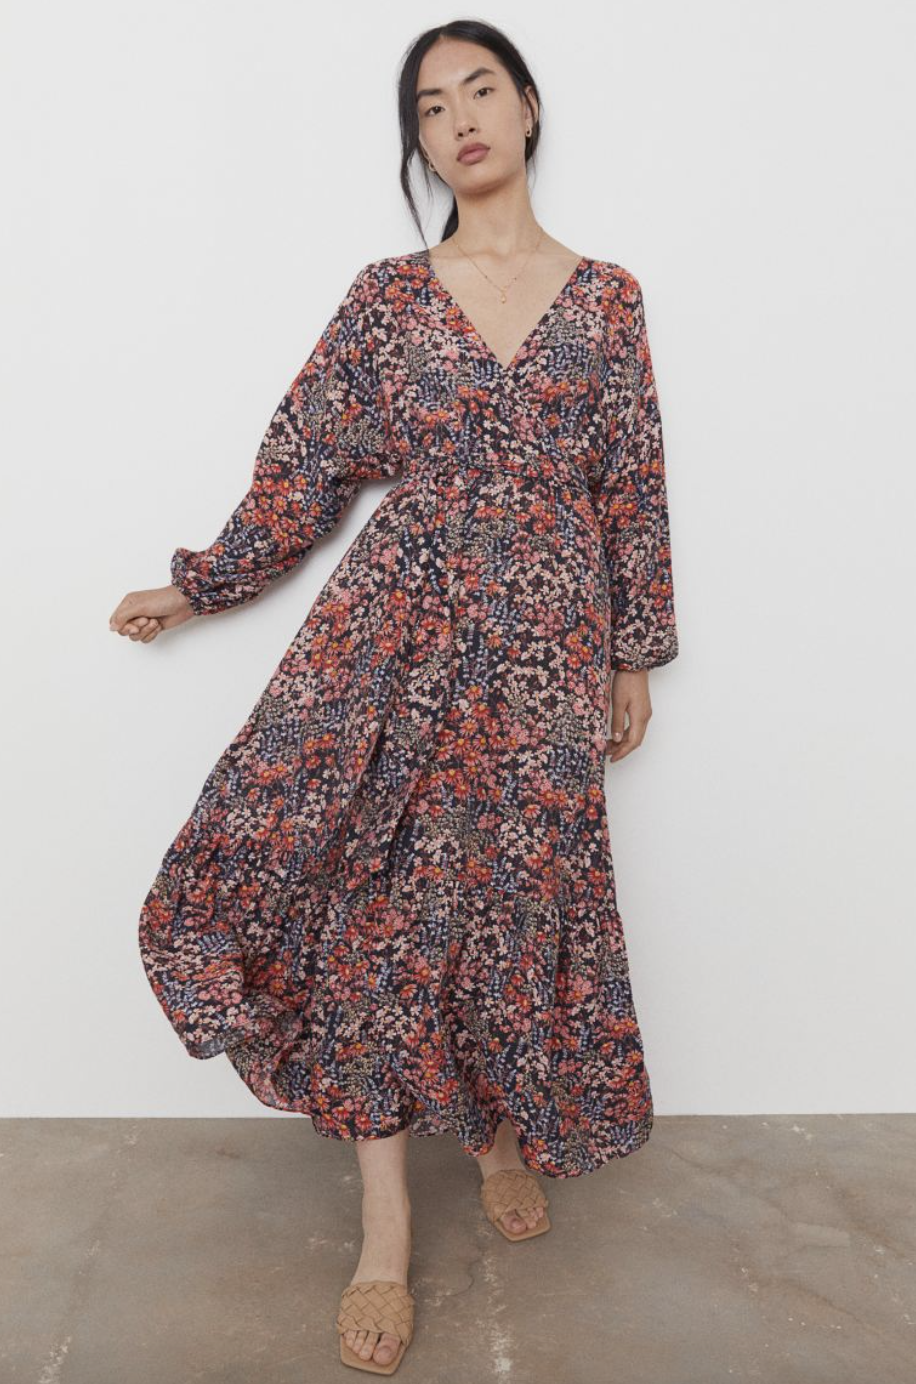 Fall wedding guest dresses: H&M Long Wrap Dress in Dark Blue/Red Floral (Photo via H&M)